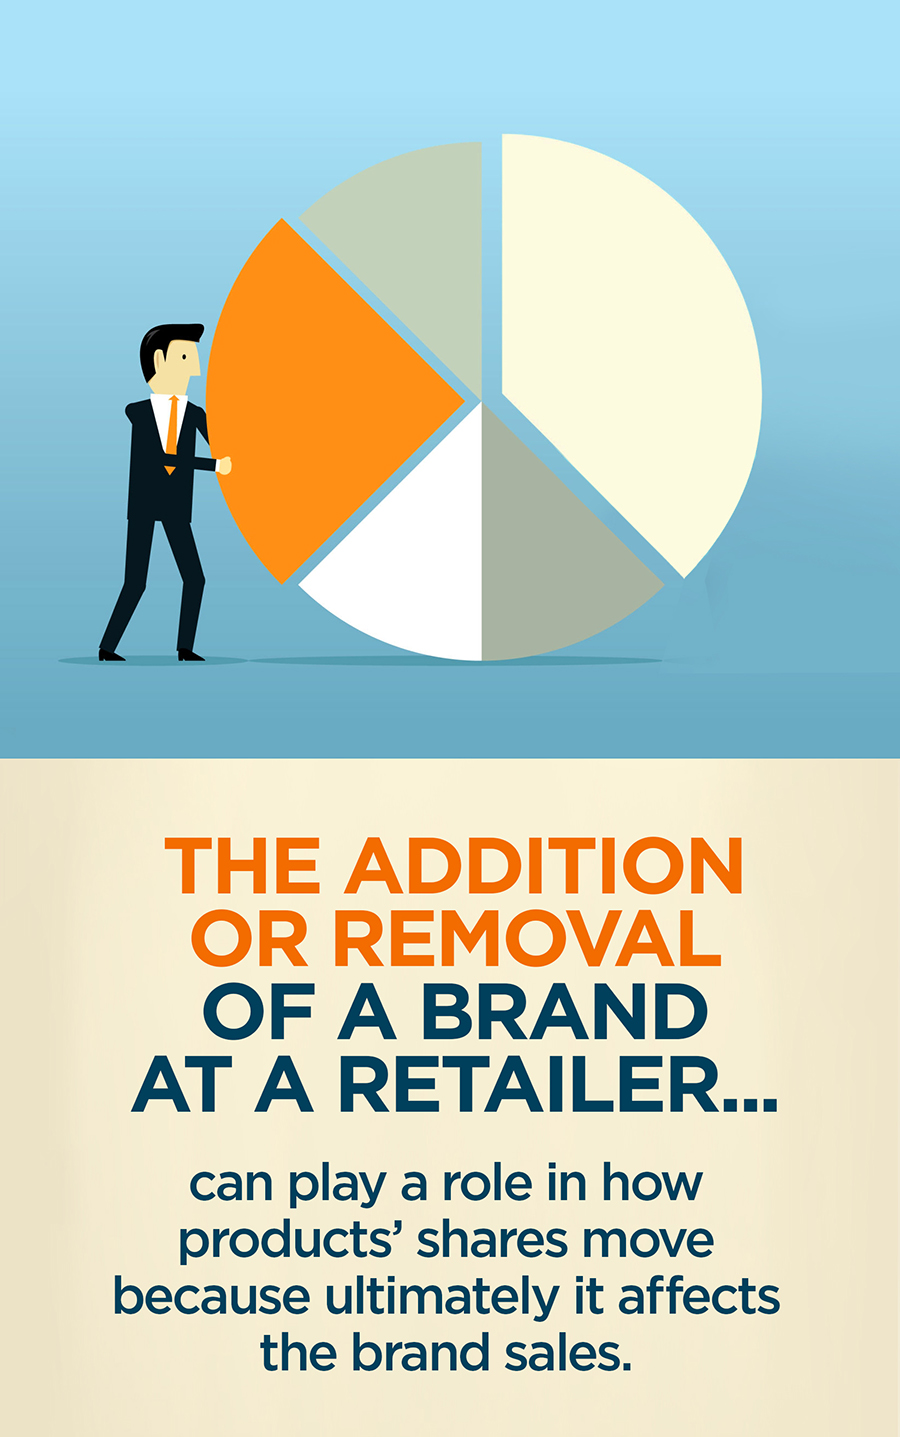 The addition or removal of a brand at a retailer can play a roe in how products' shares move because it ultimately affects the brand sales